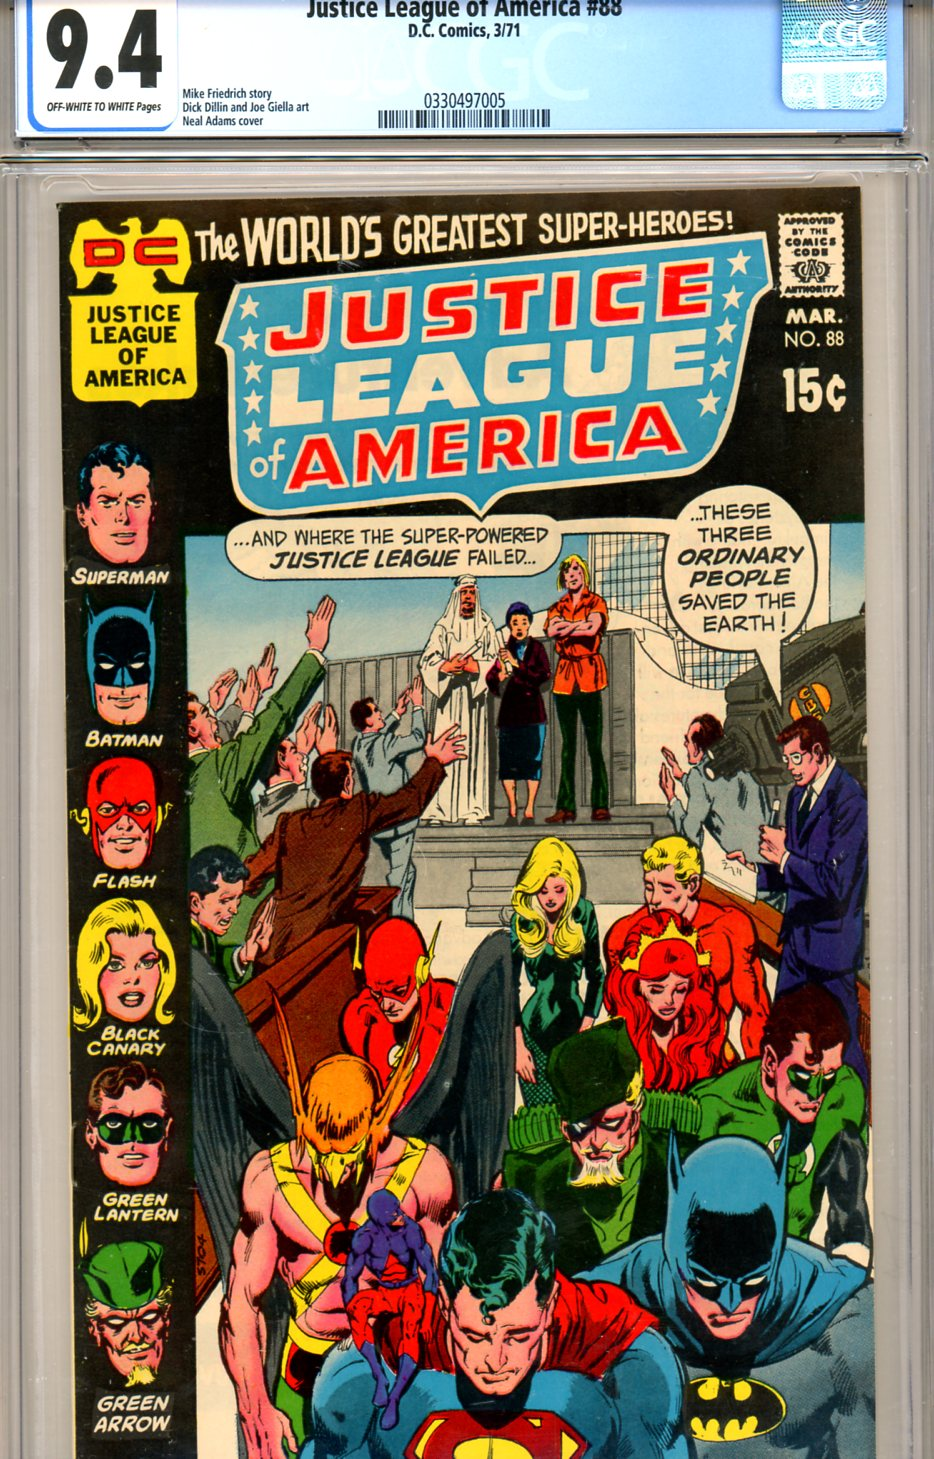 Justice League of America #88 CGC 9.4 ow/w